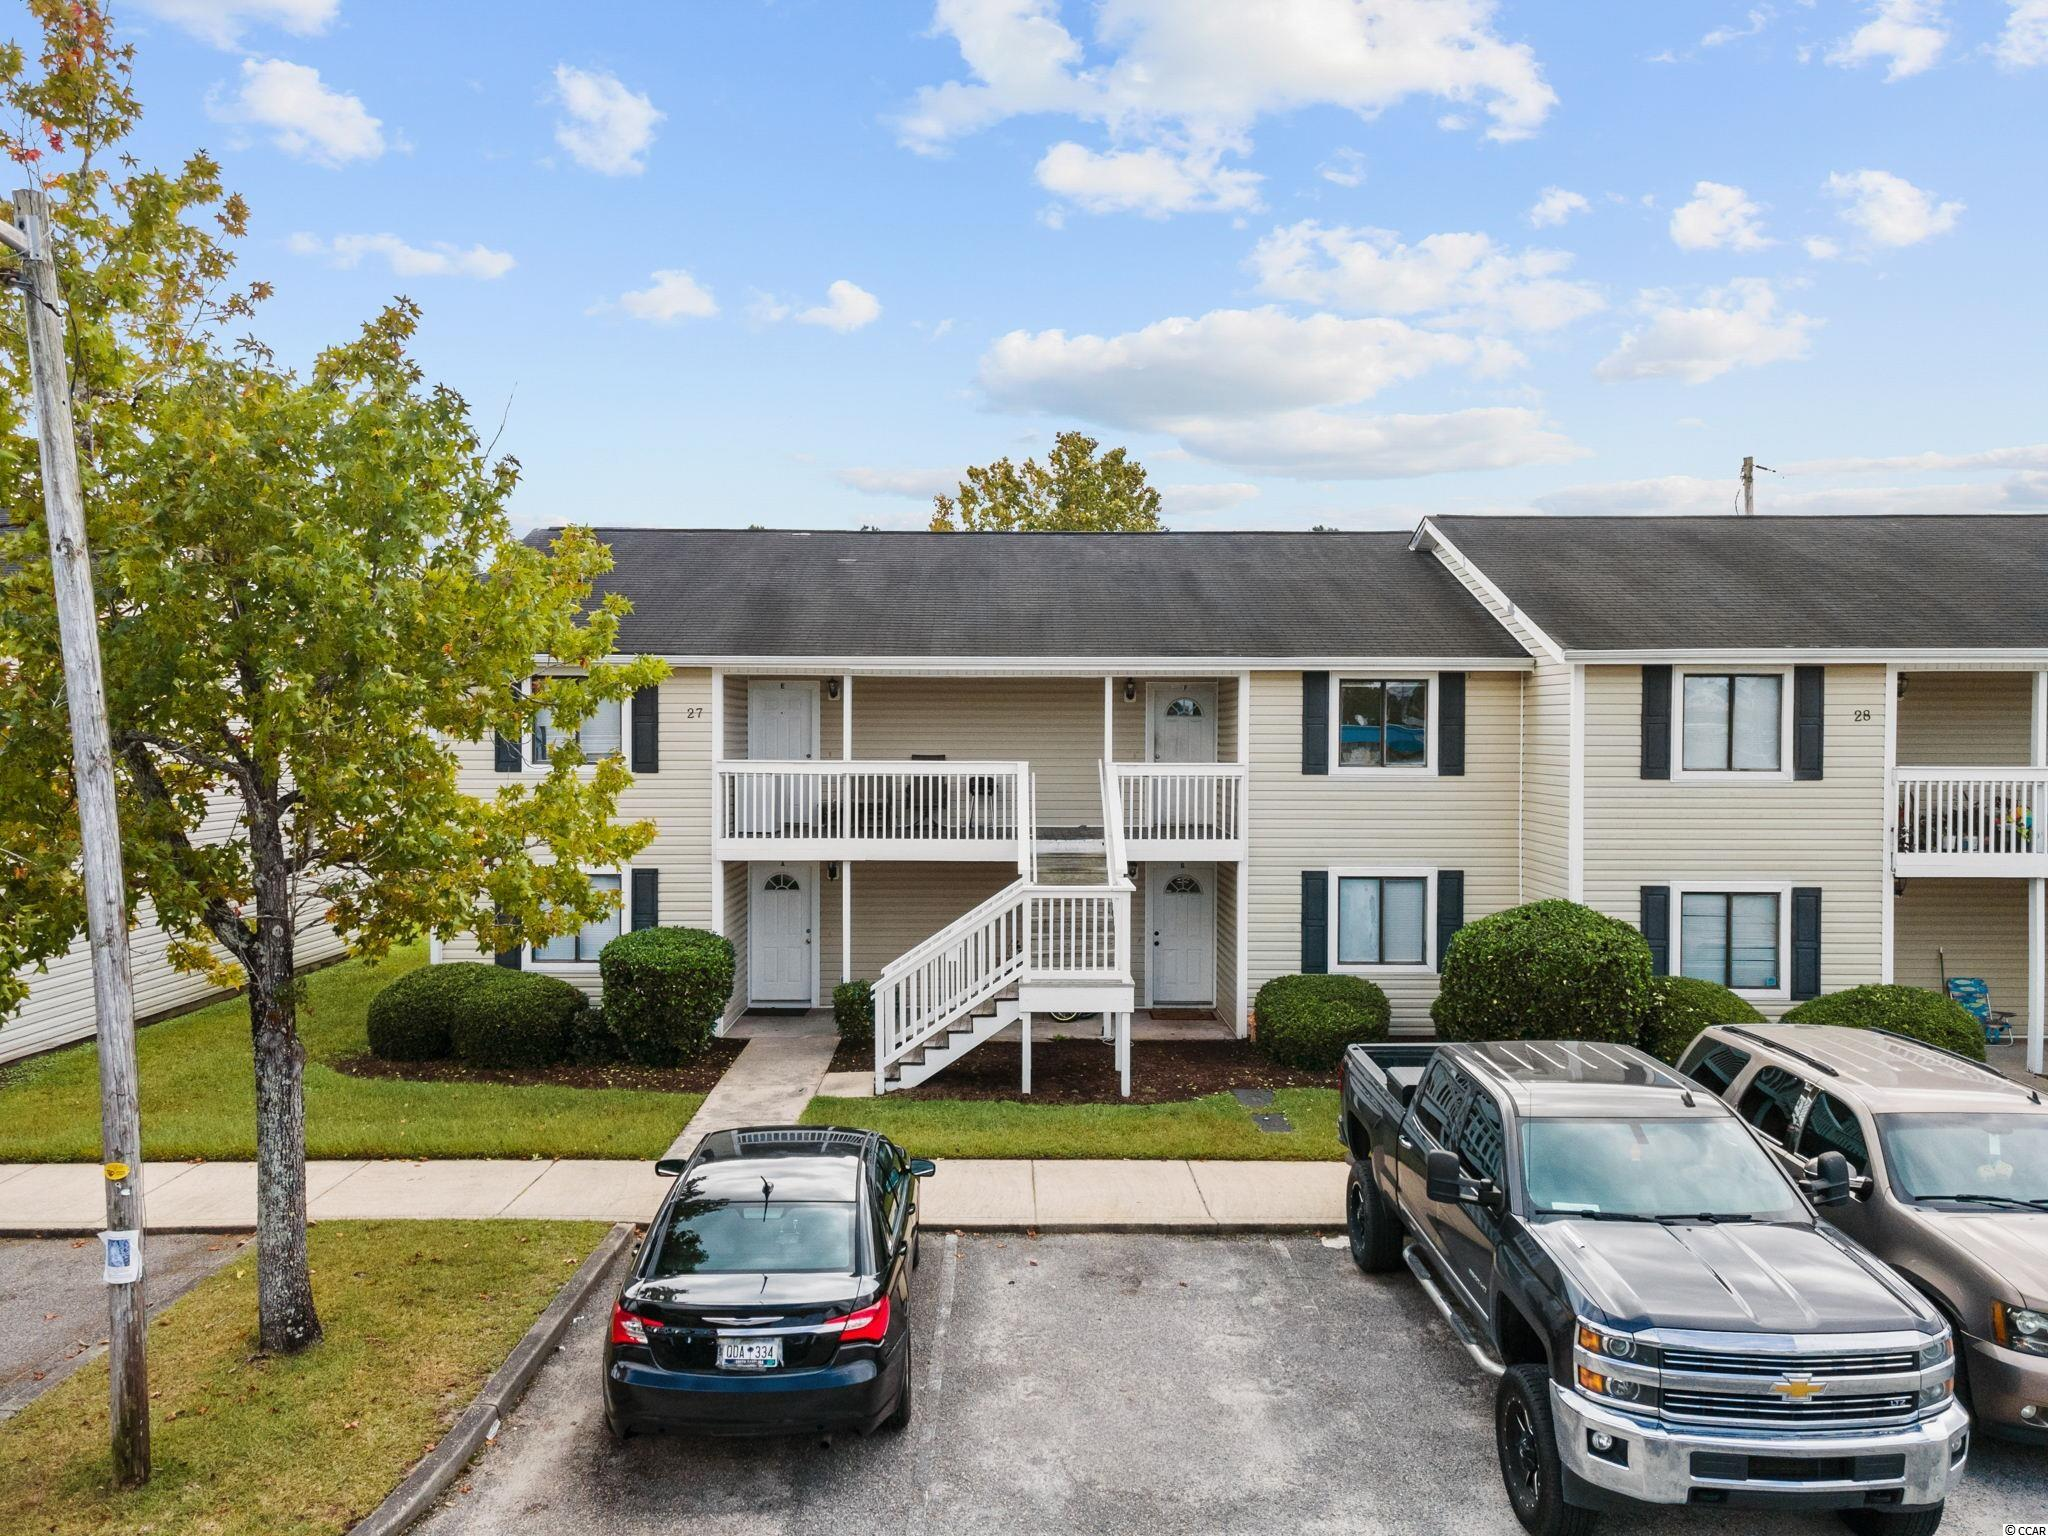 Excellent investment opportunity to purchase this 2 bedroom 2 bath condo, close to Carolina Coastal University. Sold as is. Complex offers a swimming pool and laundry mat and is priced to sell!